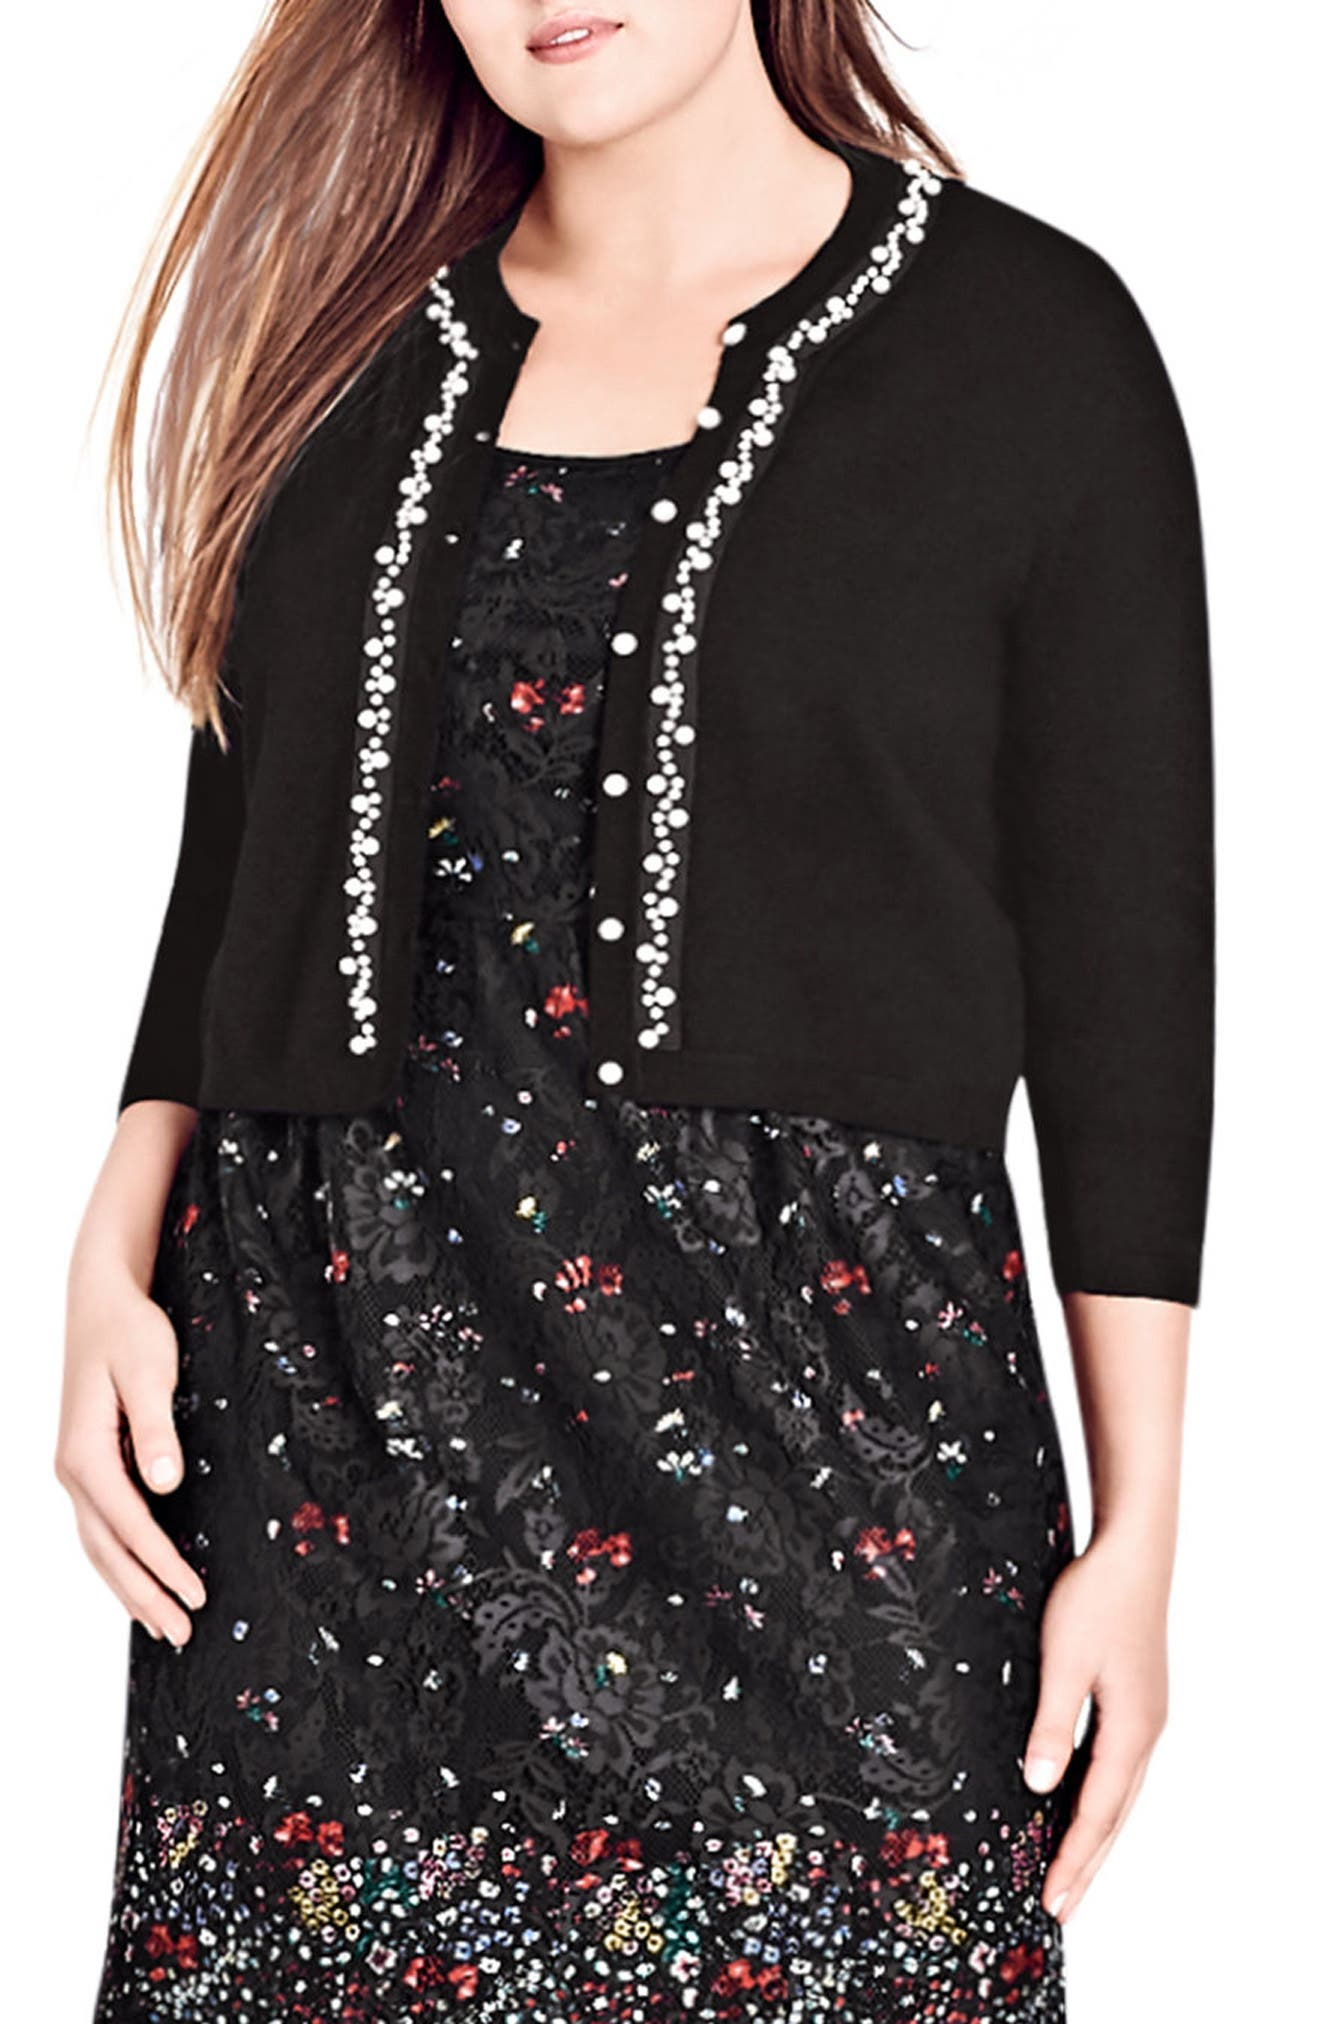 Alternate Image 1 Selected - City Chic Imitation Pearl Trim Cardigan (Plus Size)